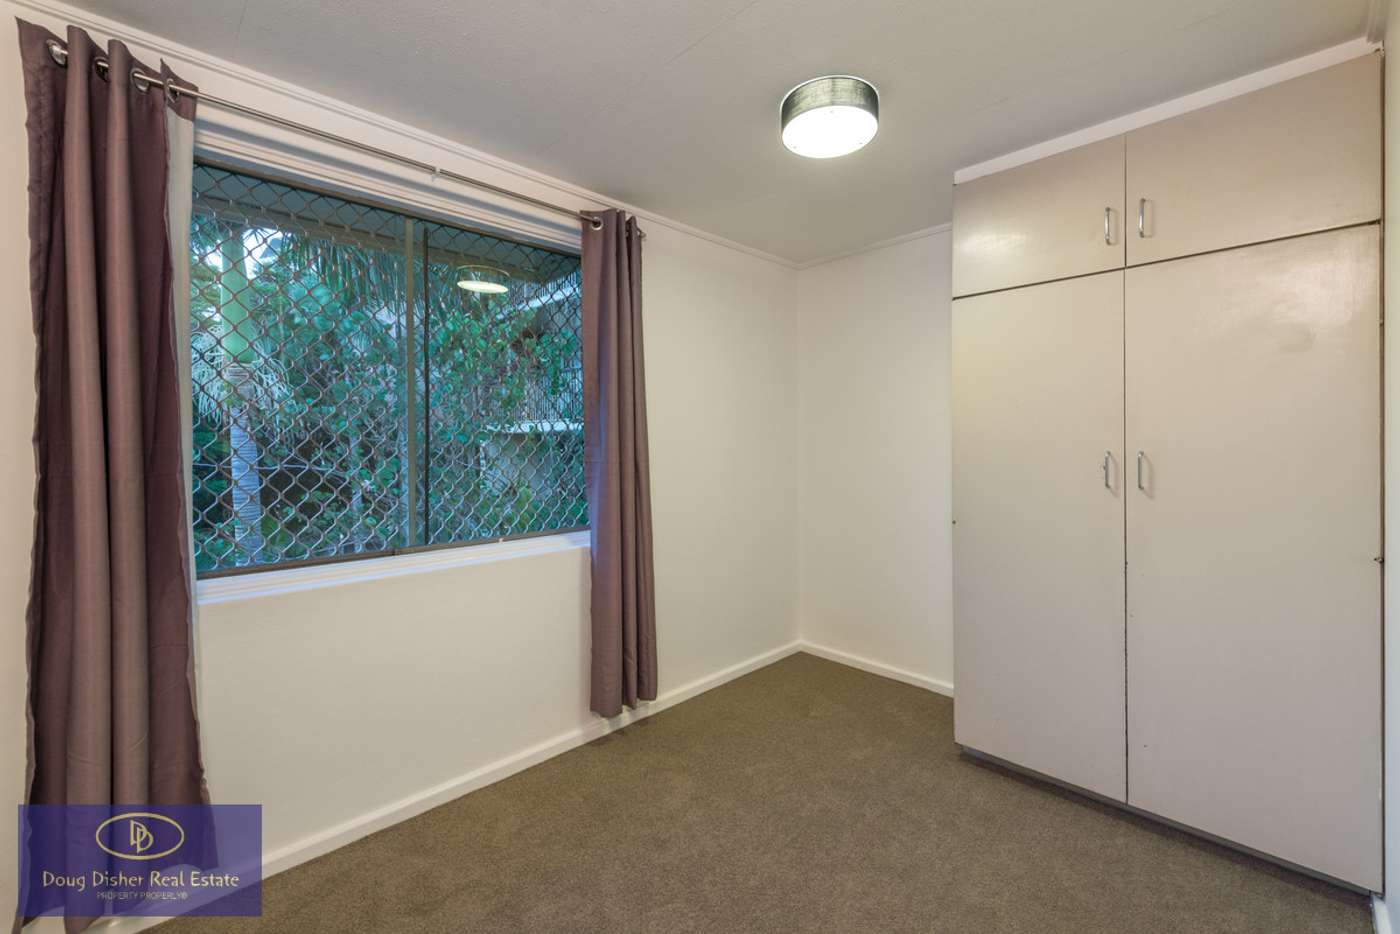 Sixth view of Homely unit listing, 6/5 Sir Fred Schonell Drive, St Lucia QLD 4067